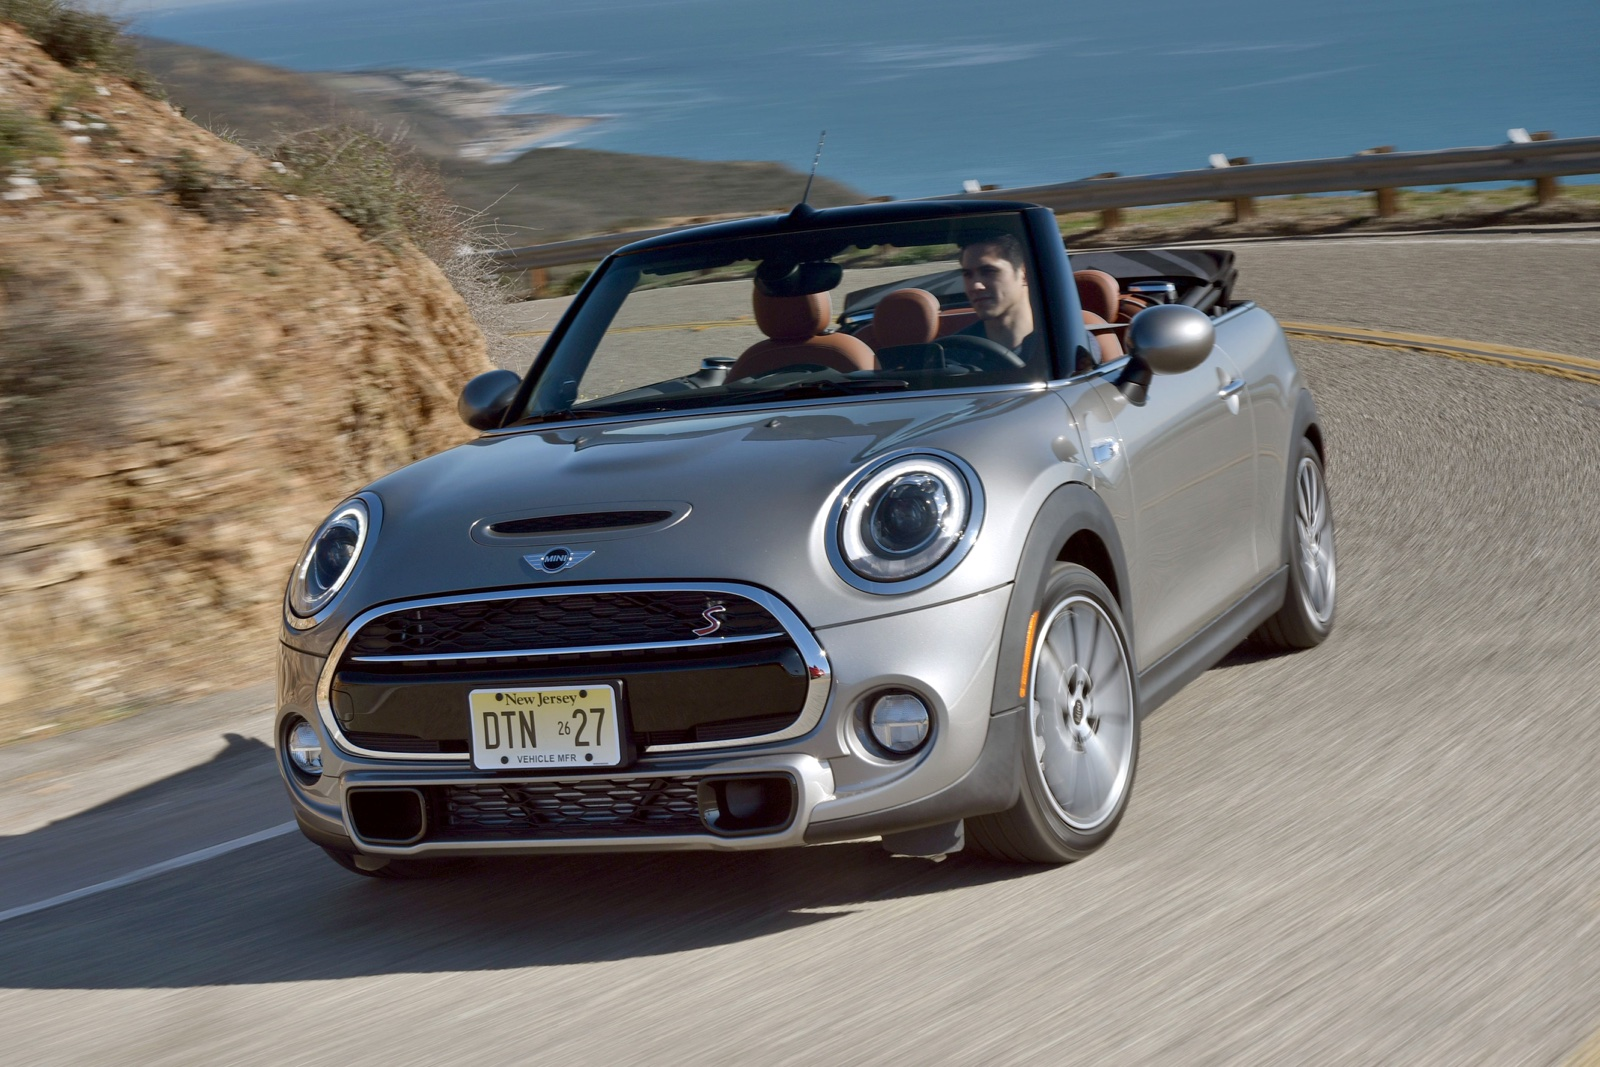 2016 mini cooper s cabriolet review gtspirit. Black Bedroom Furniture Sets. Home Design Ideas